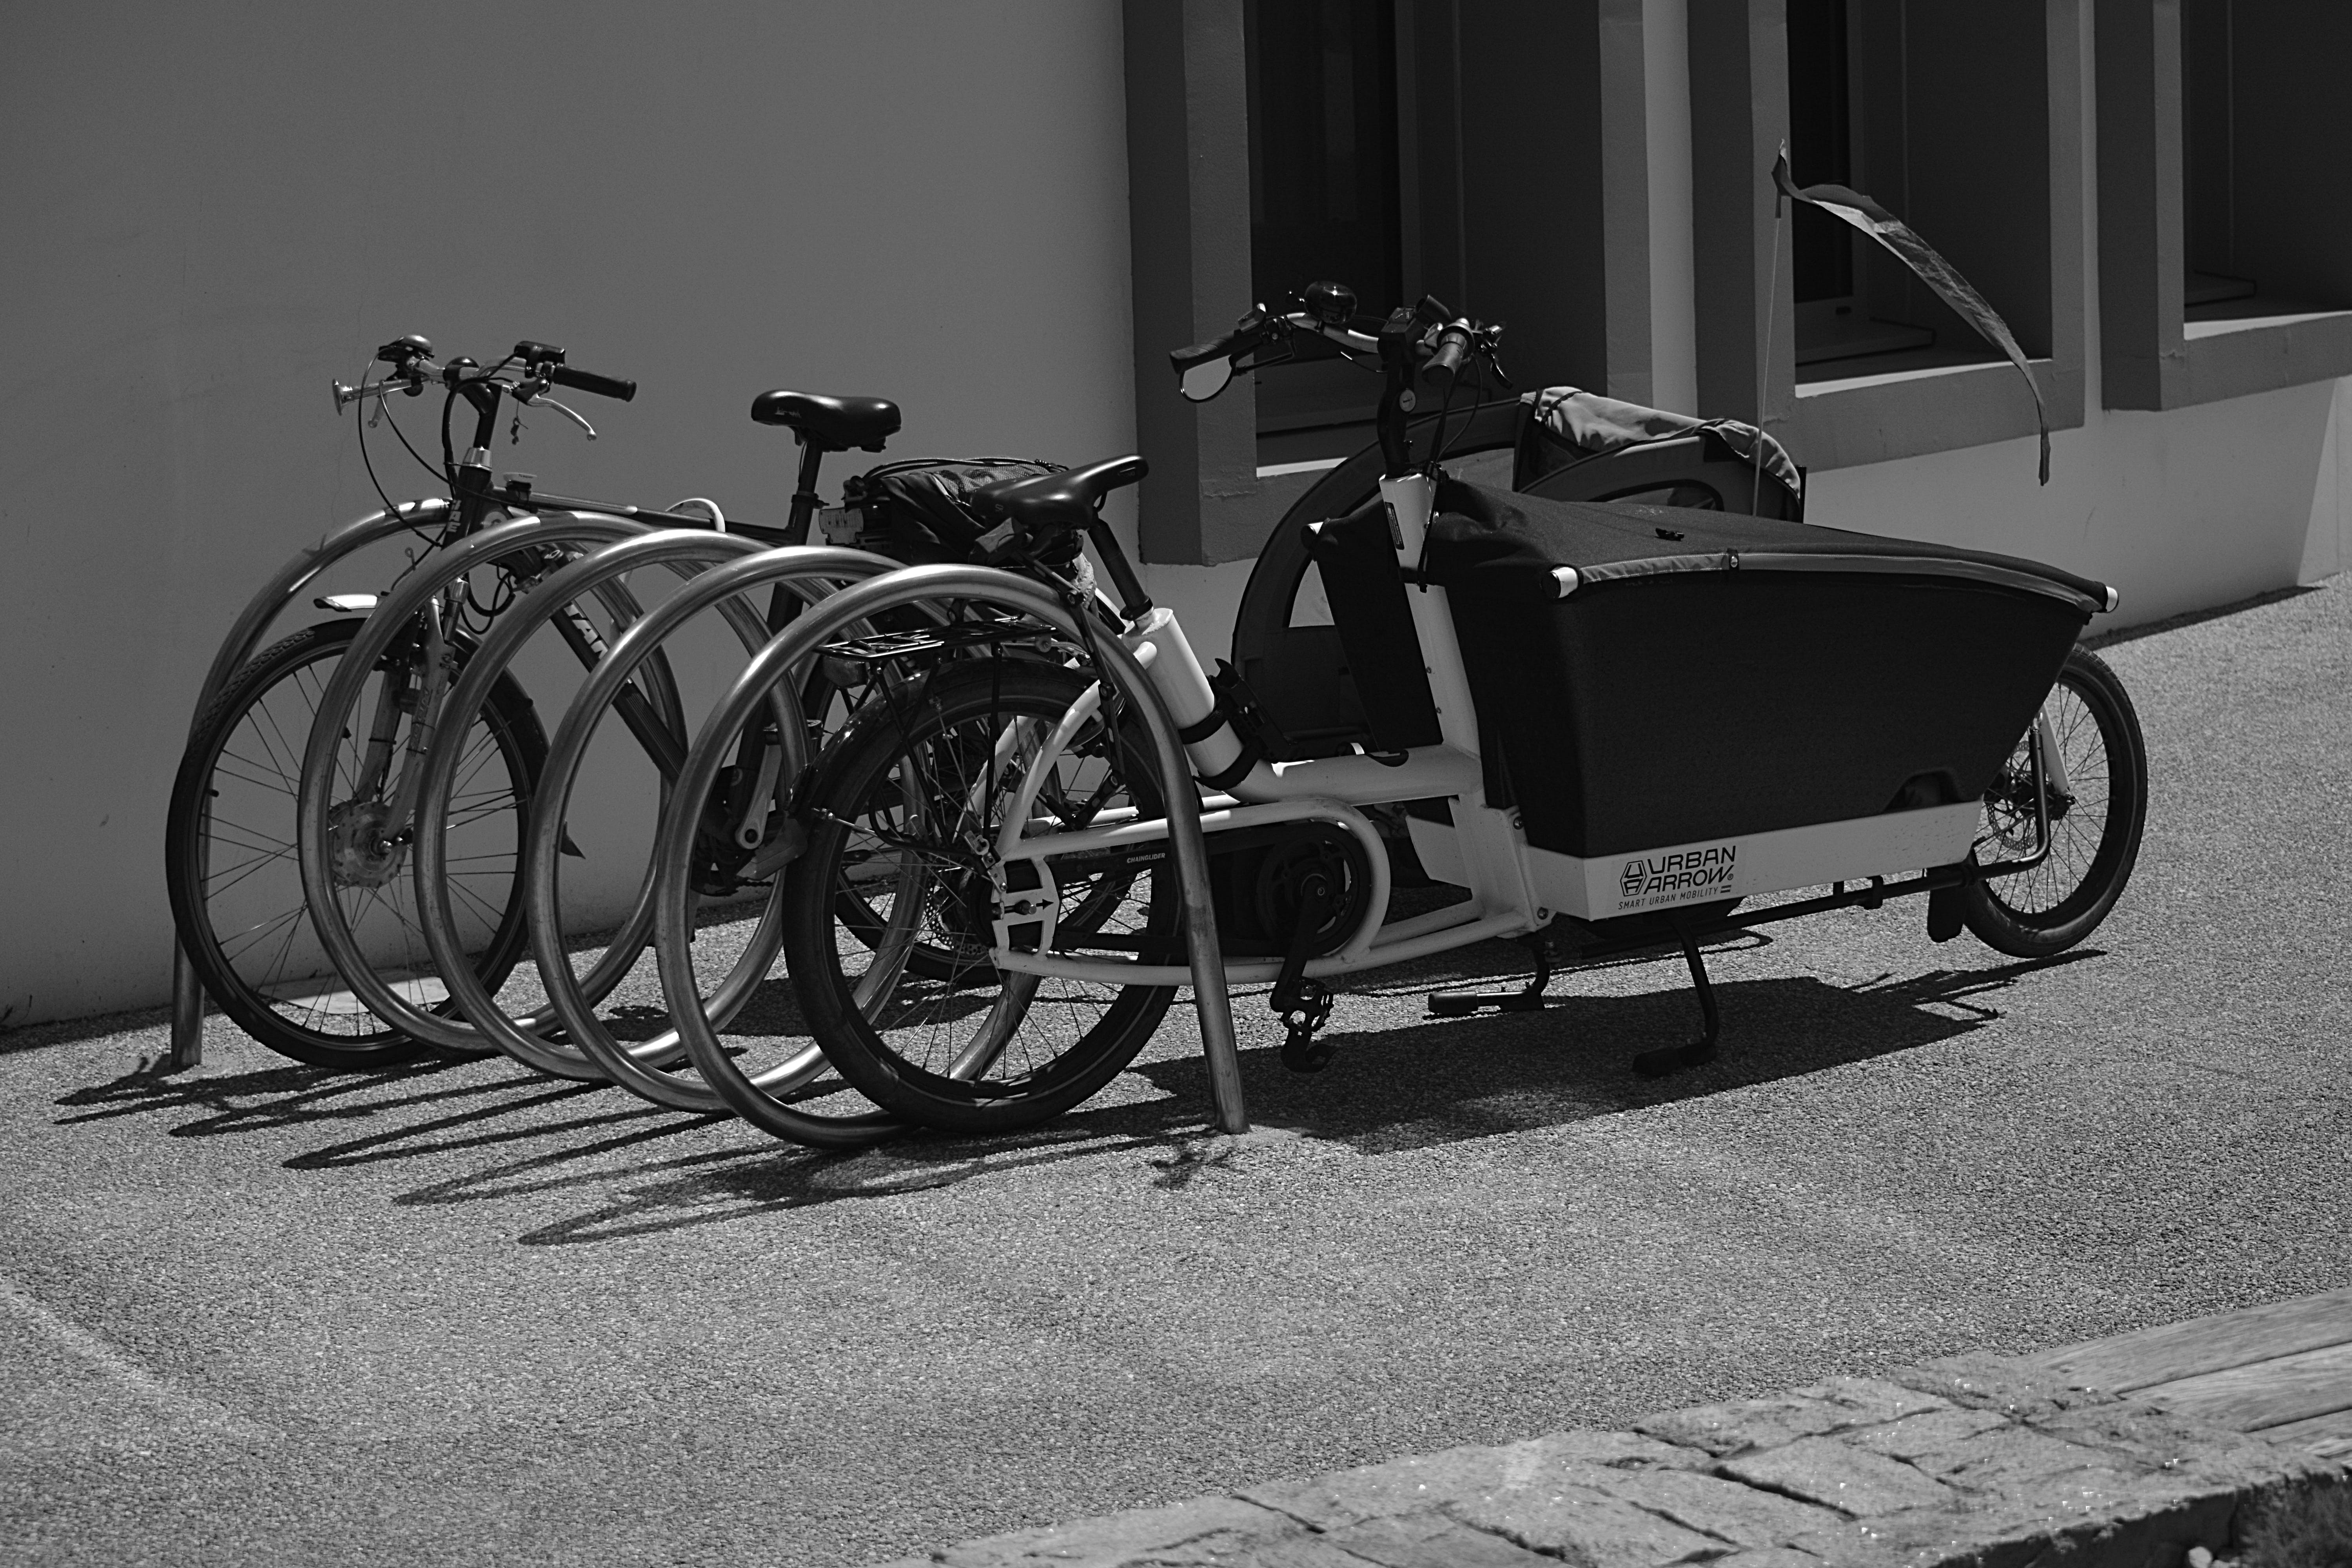 Greyscale Photo of Utility Bike during Daytime